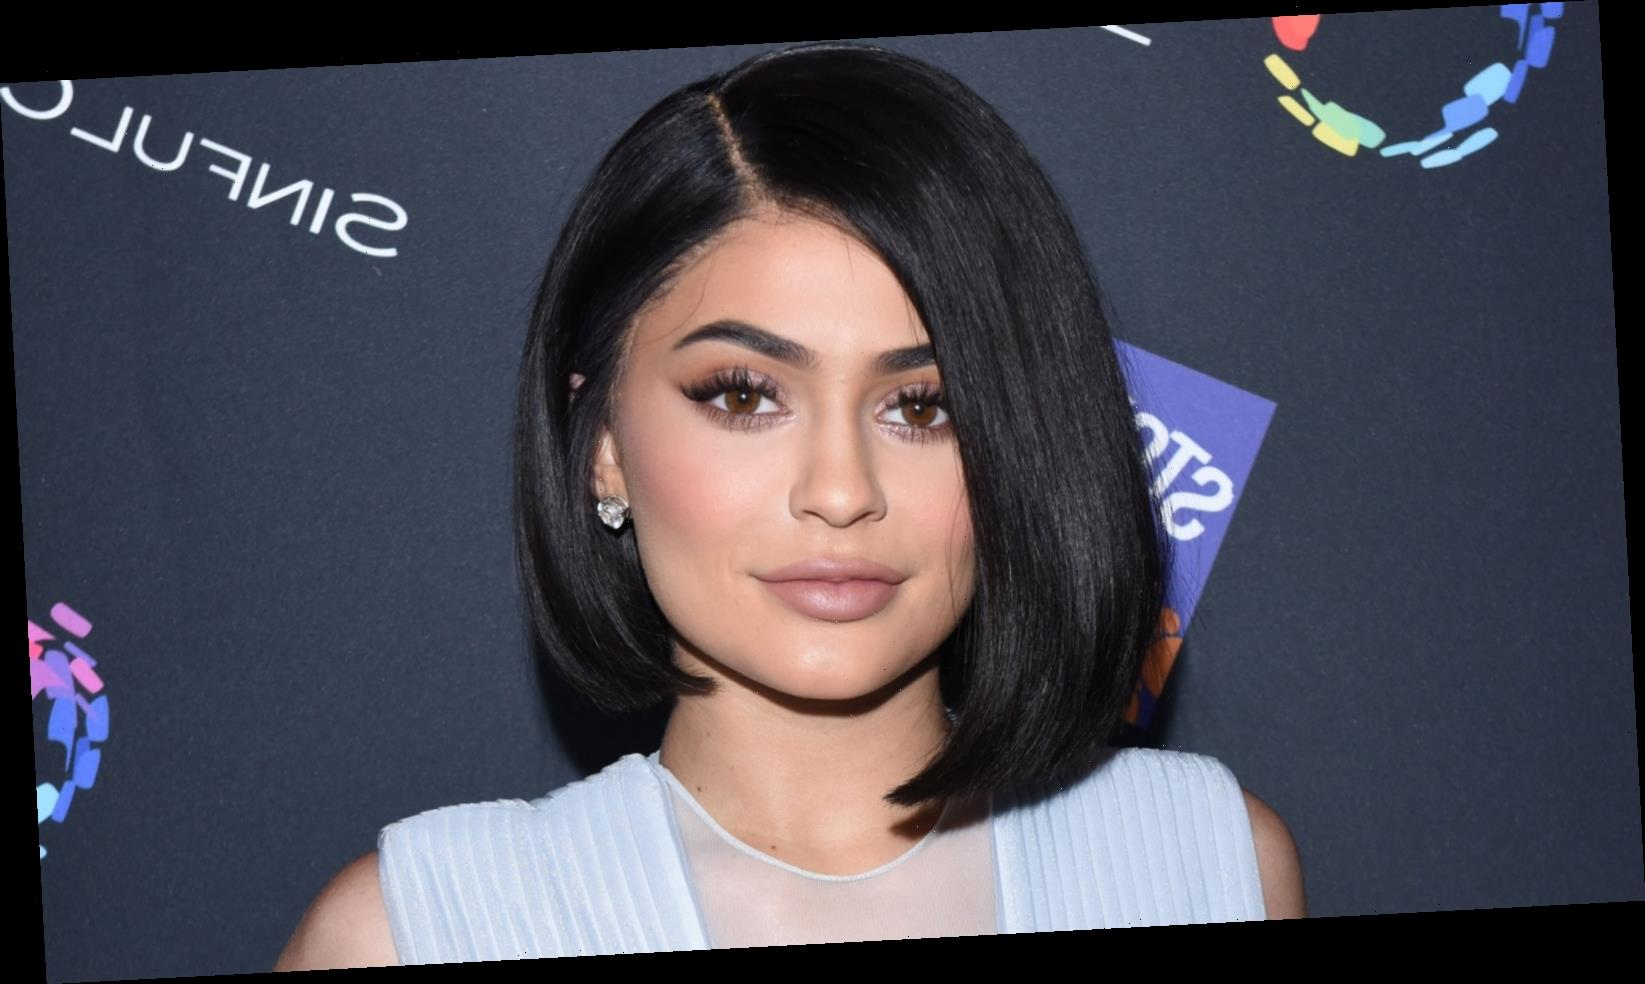 The worst part about filming KUWTK, according to Kylie Jenner